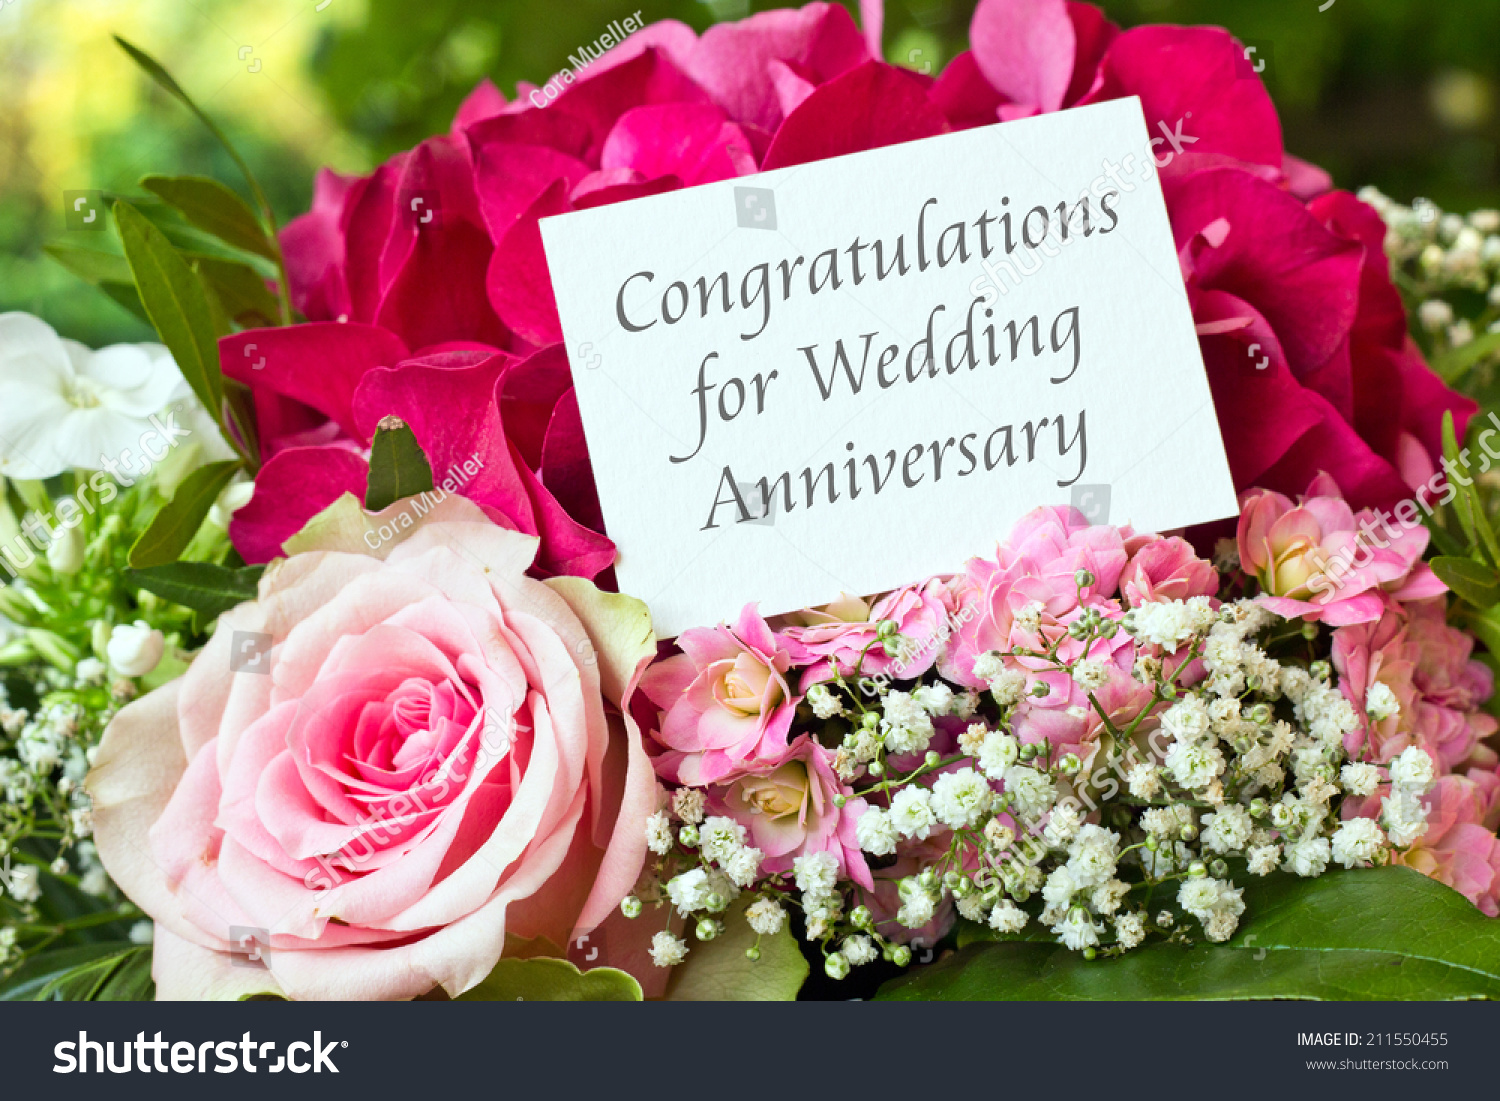 Wedding Anniversary Card With Pink Flowers Congratulations For Wedding